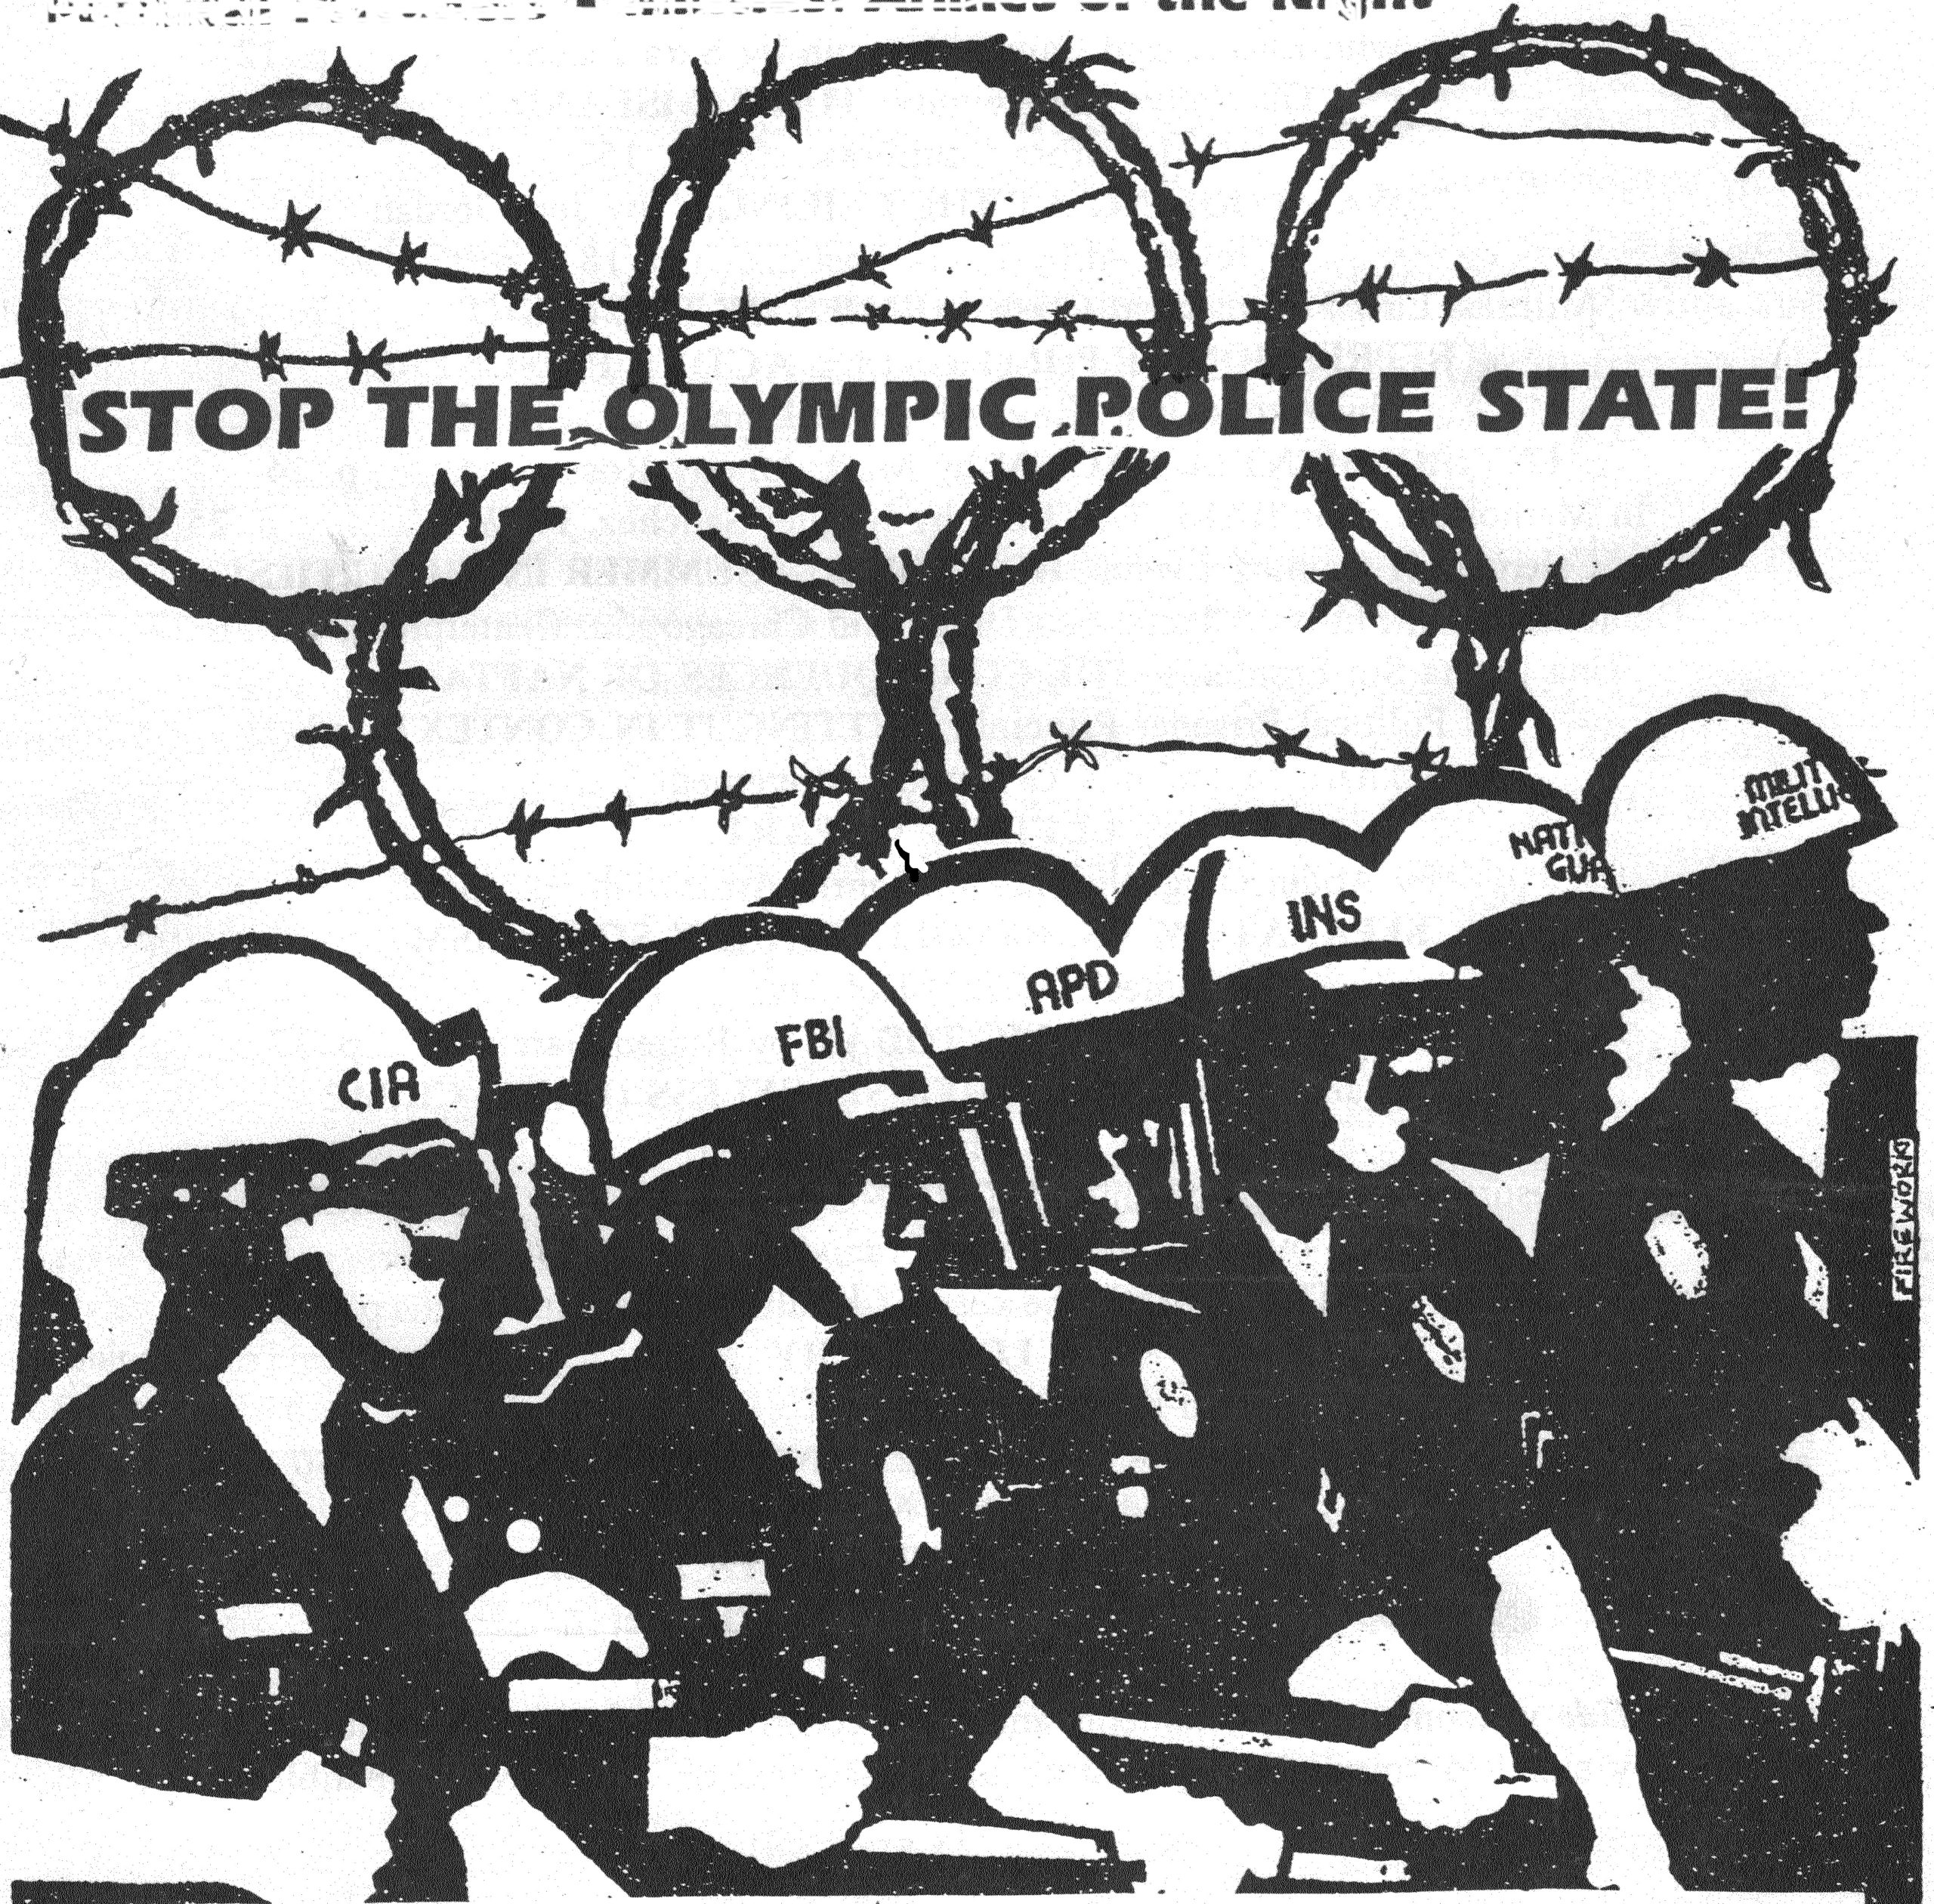 Stop the Olympics Police State (1984 L.A.)